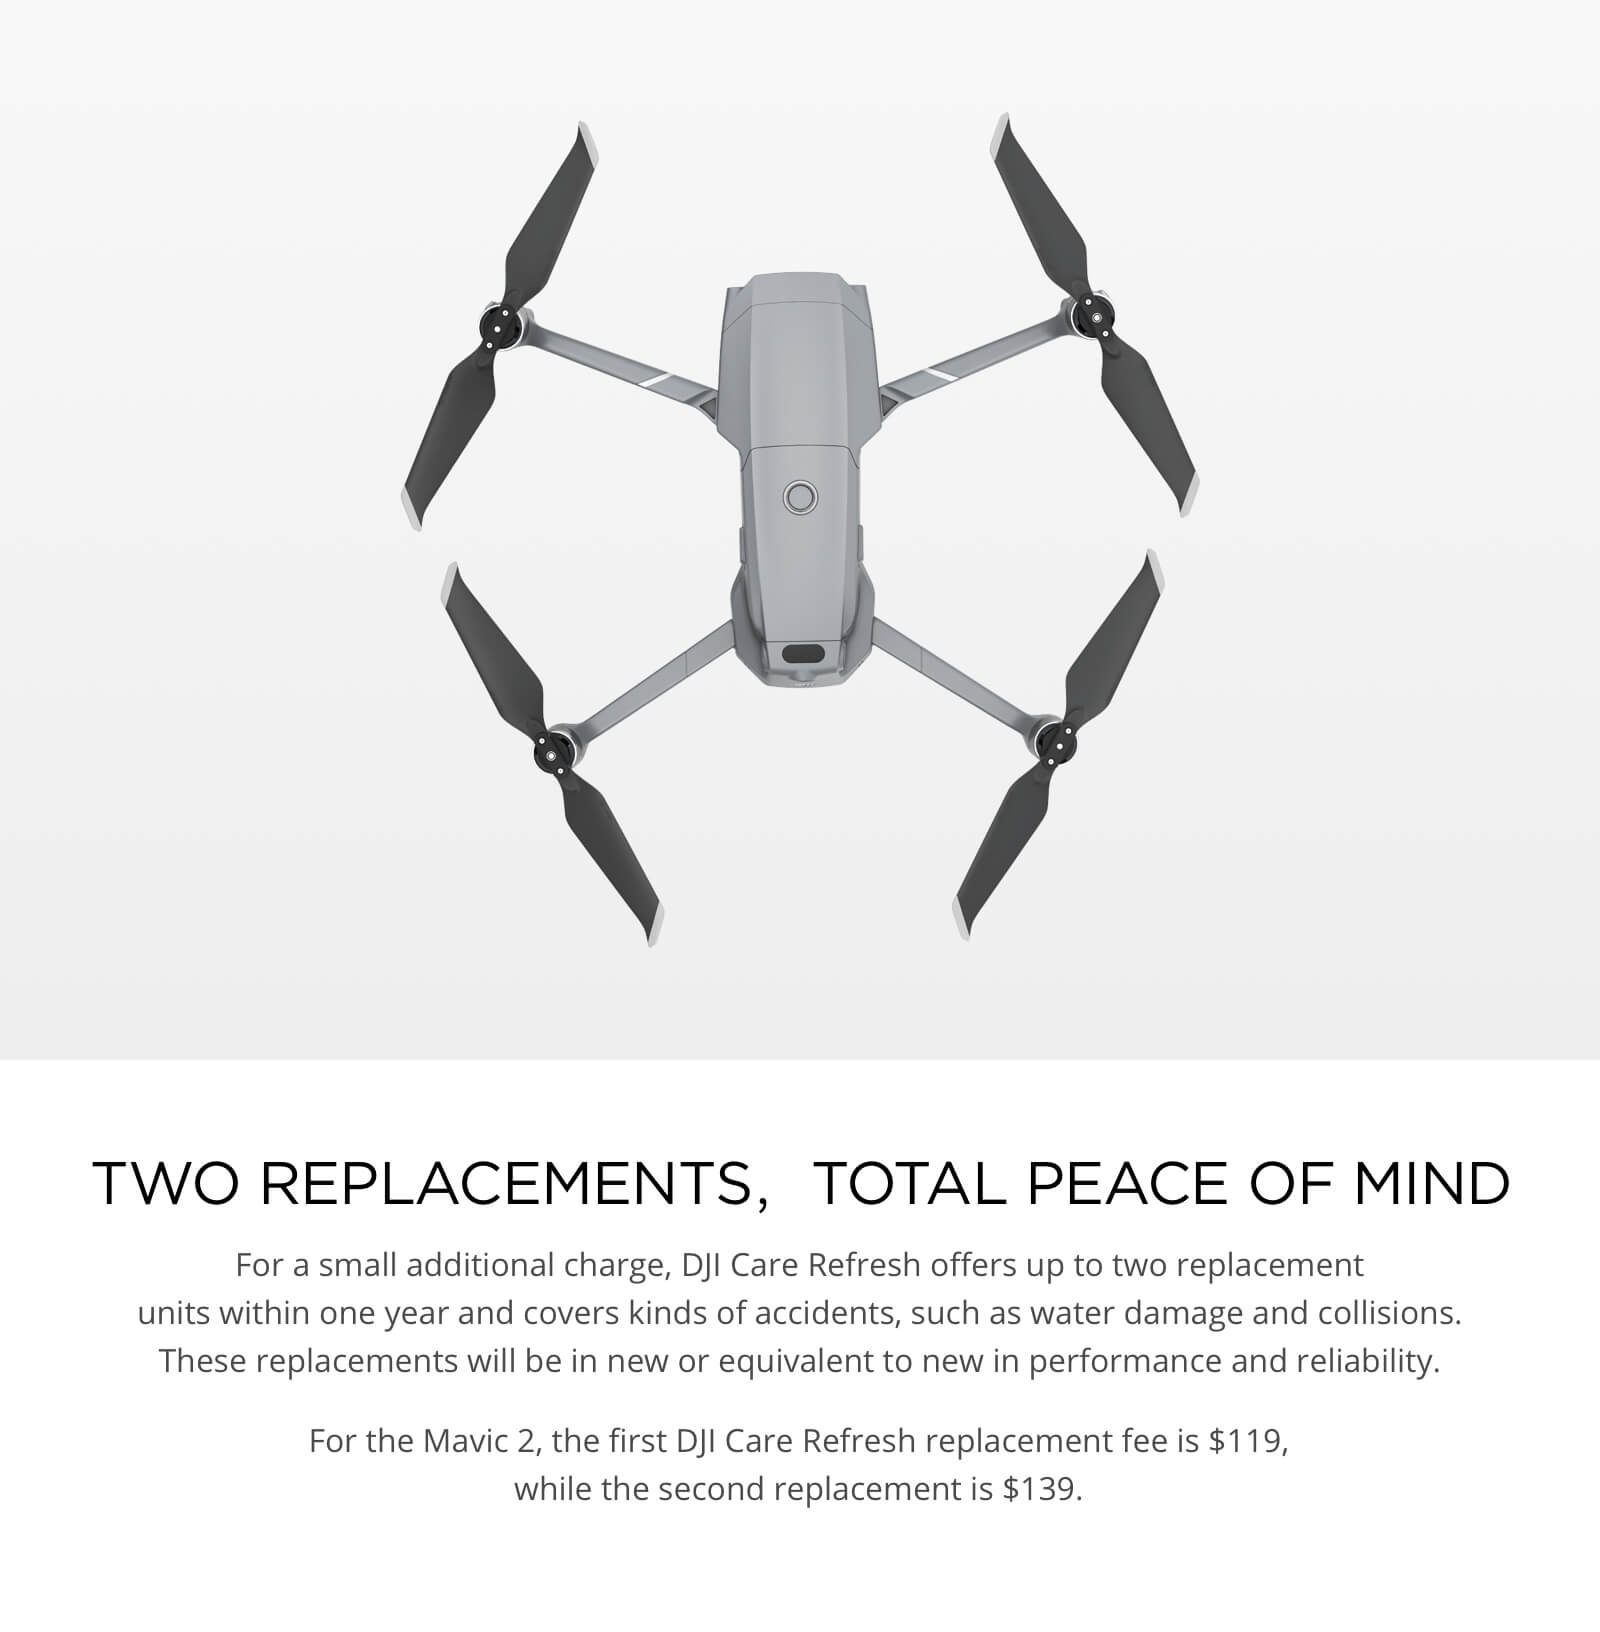 DJI Care Refresh Replacement Fees Mavic 2